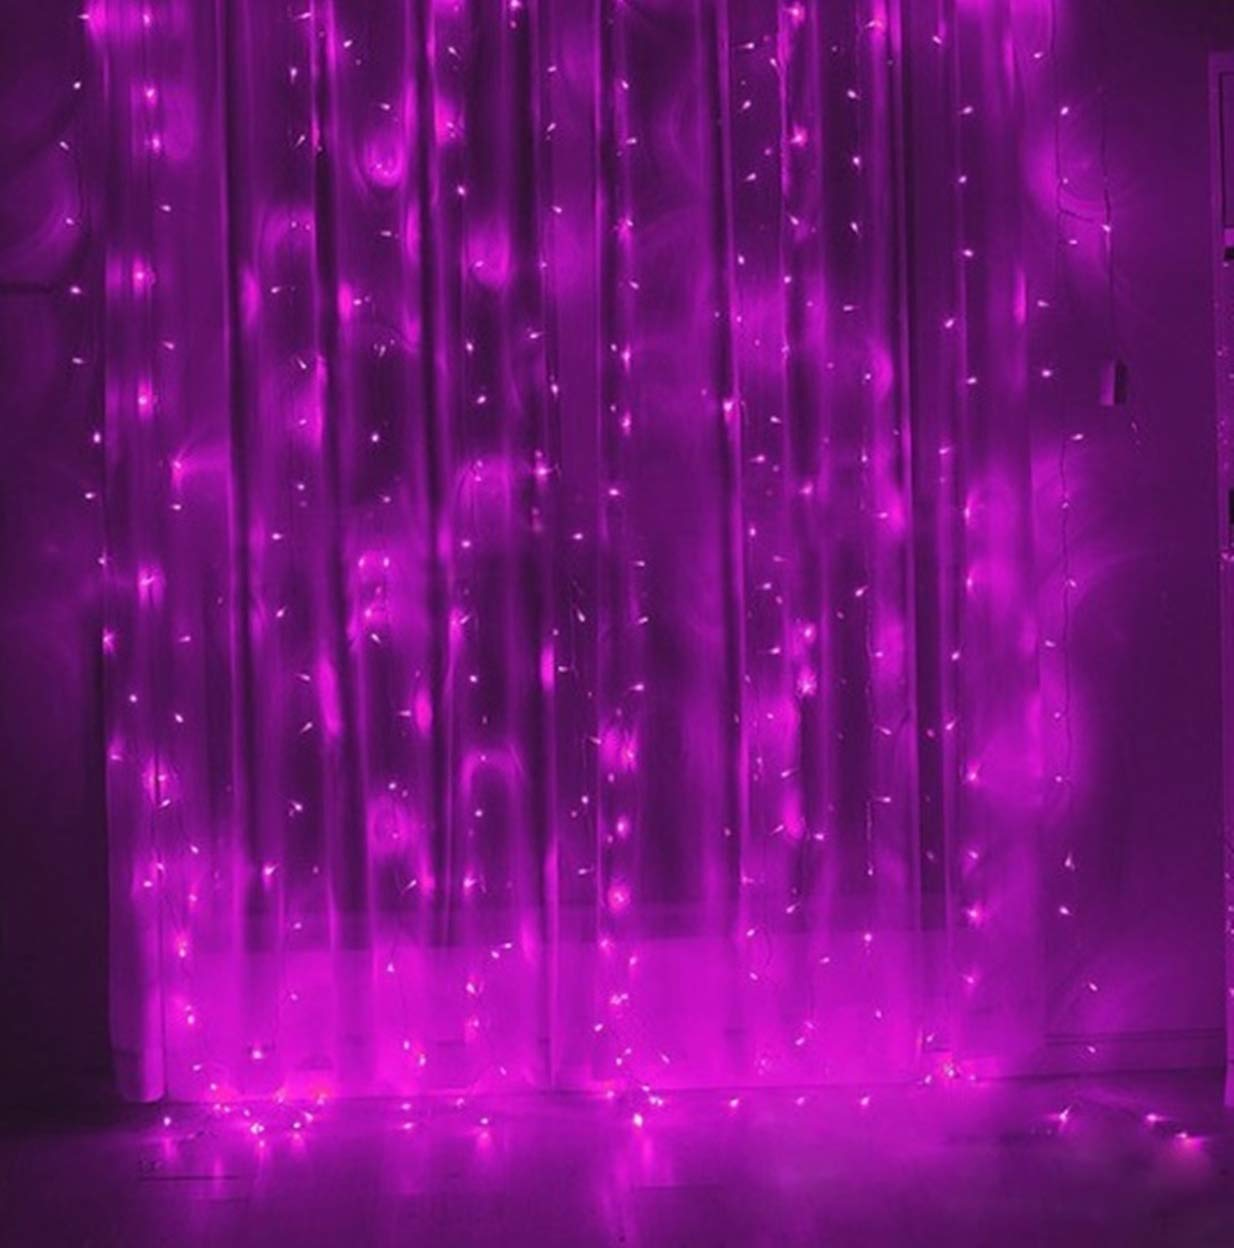 1 Pack 3x3m LED Night Light Fairy Curtain String Christmas Lights Girls Lamp Important Fashionable Unicorn Star Bulbs Wall Room Lamps Indoor Outdoor Holiday Decorative, Type-04